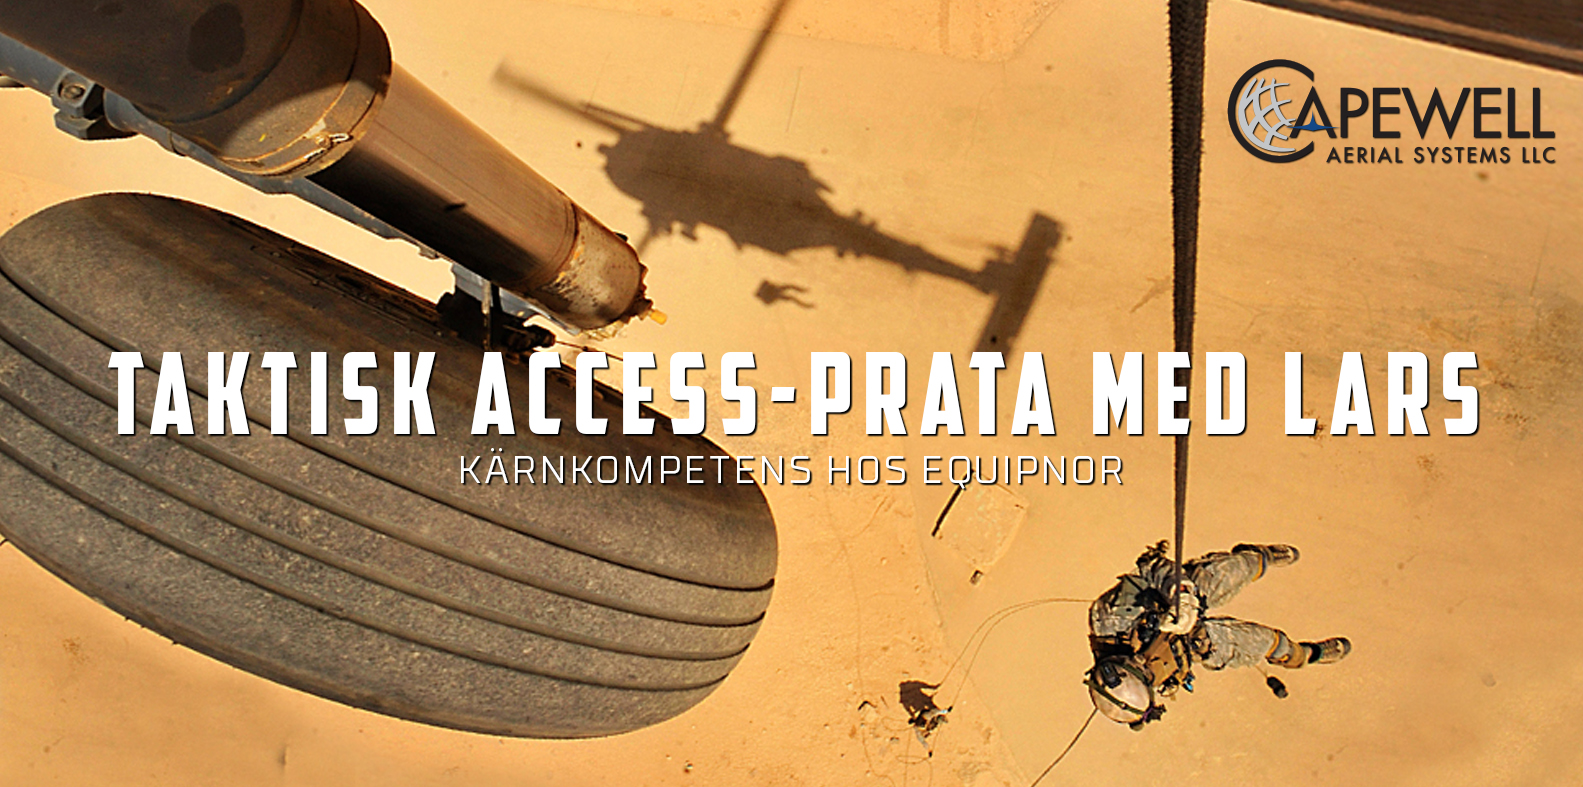 TAKTISK ACCESS_ROPE ACCESS